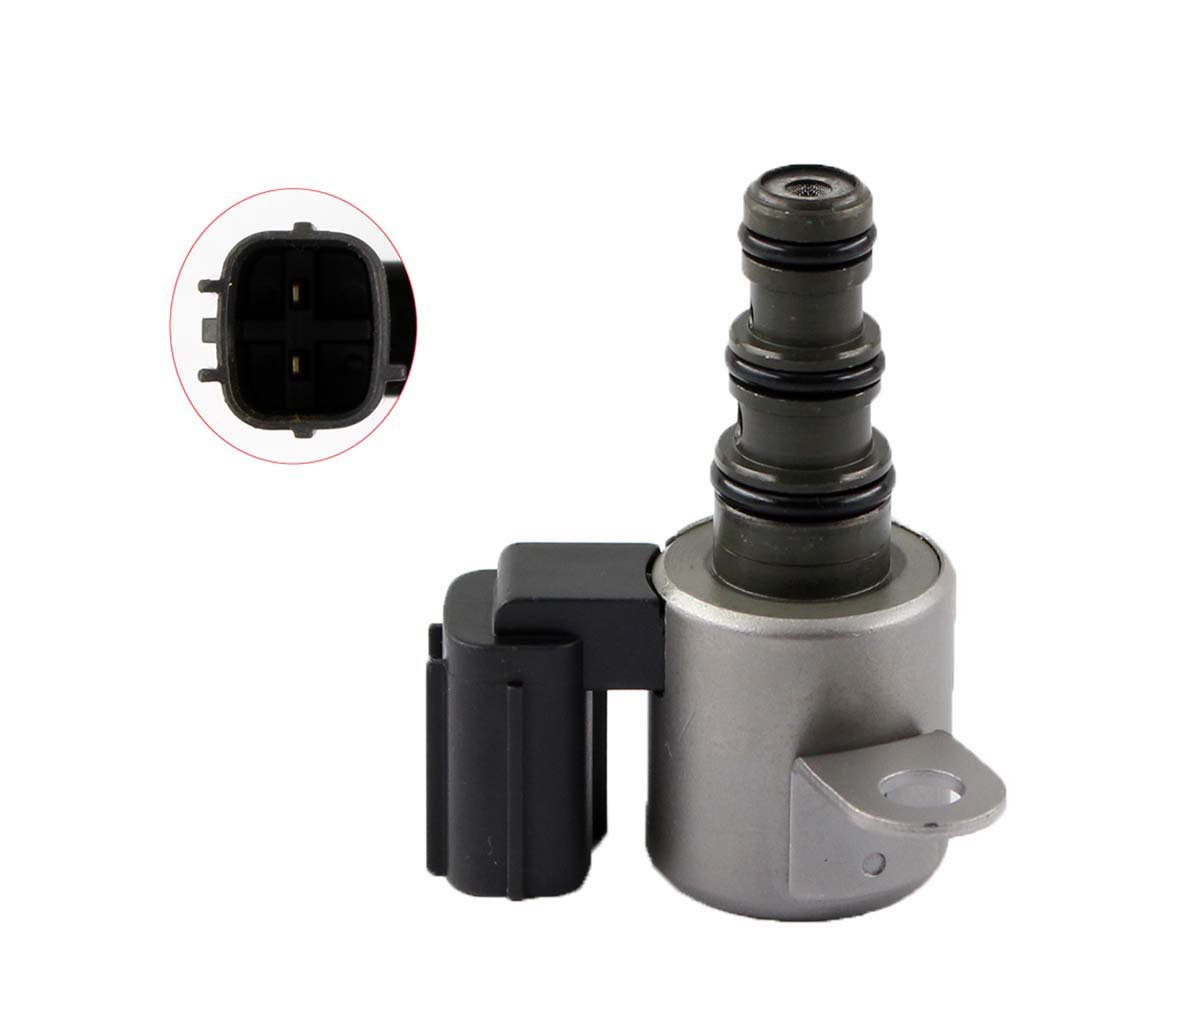 New by XtremeAmazing 2 Pcs Transmission Shift Solenoid B C Brown Black Kit For Honda Acura Prelude